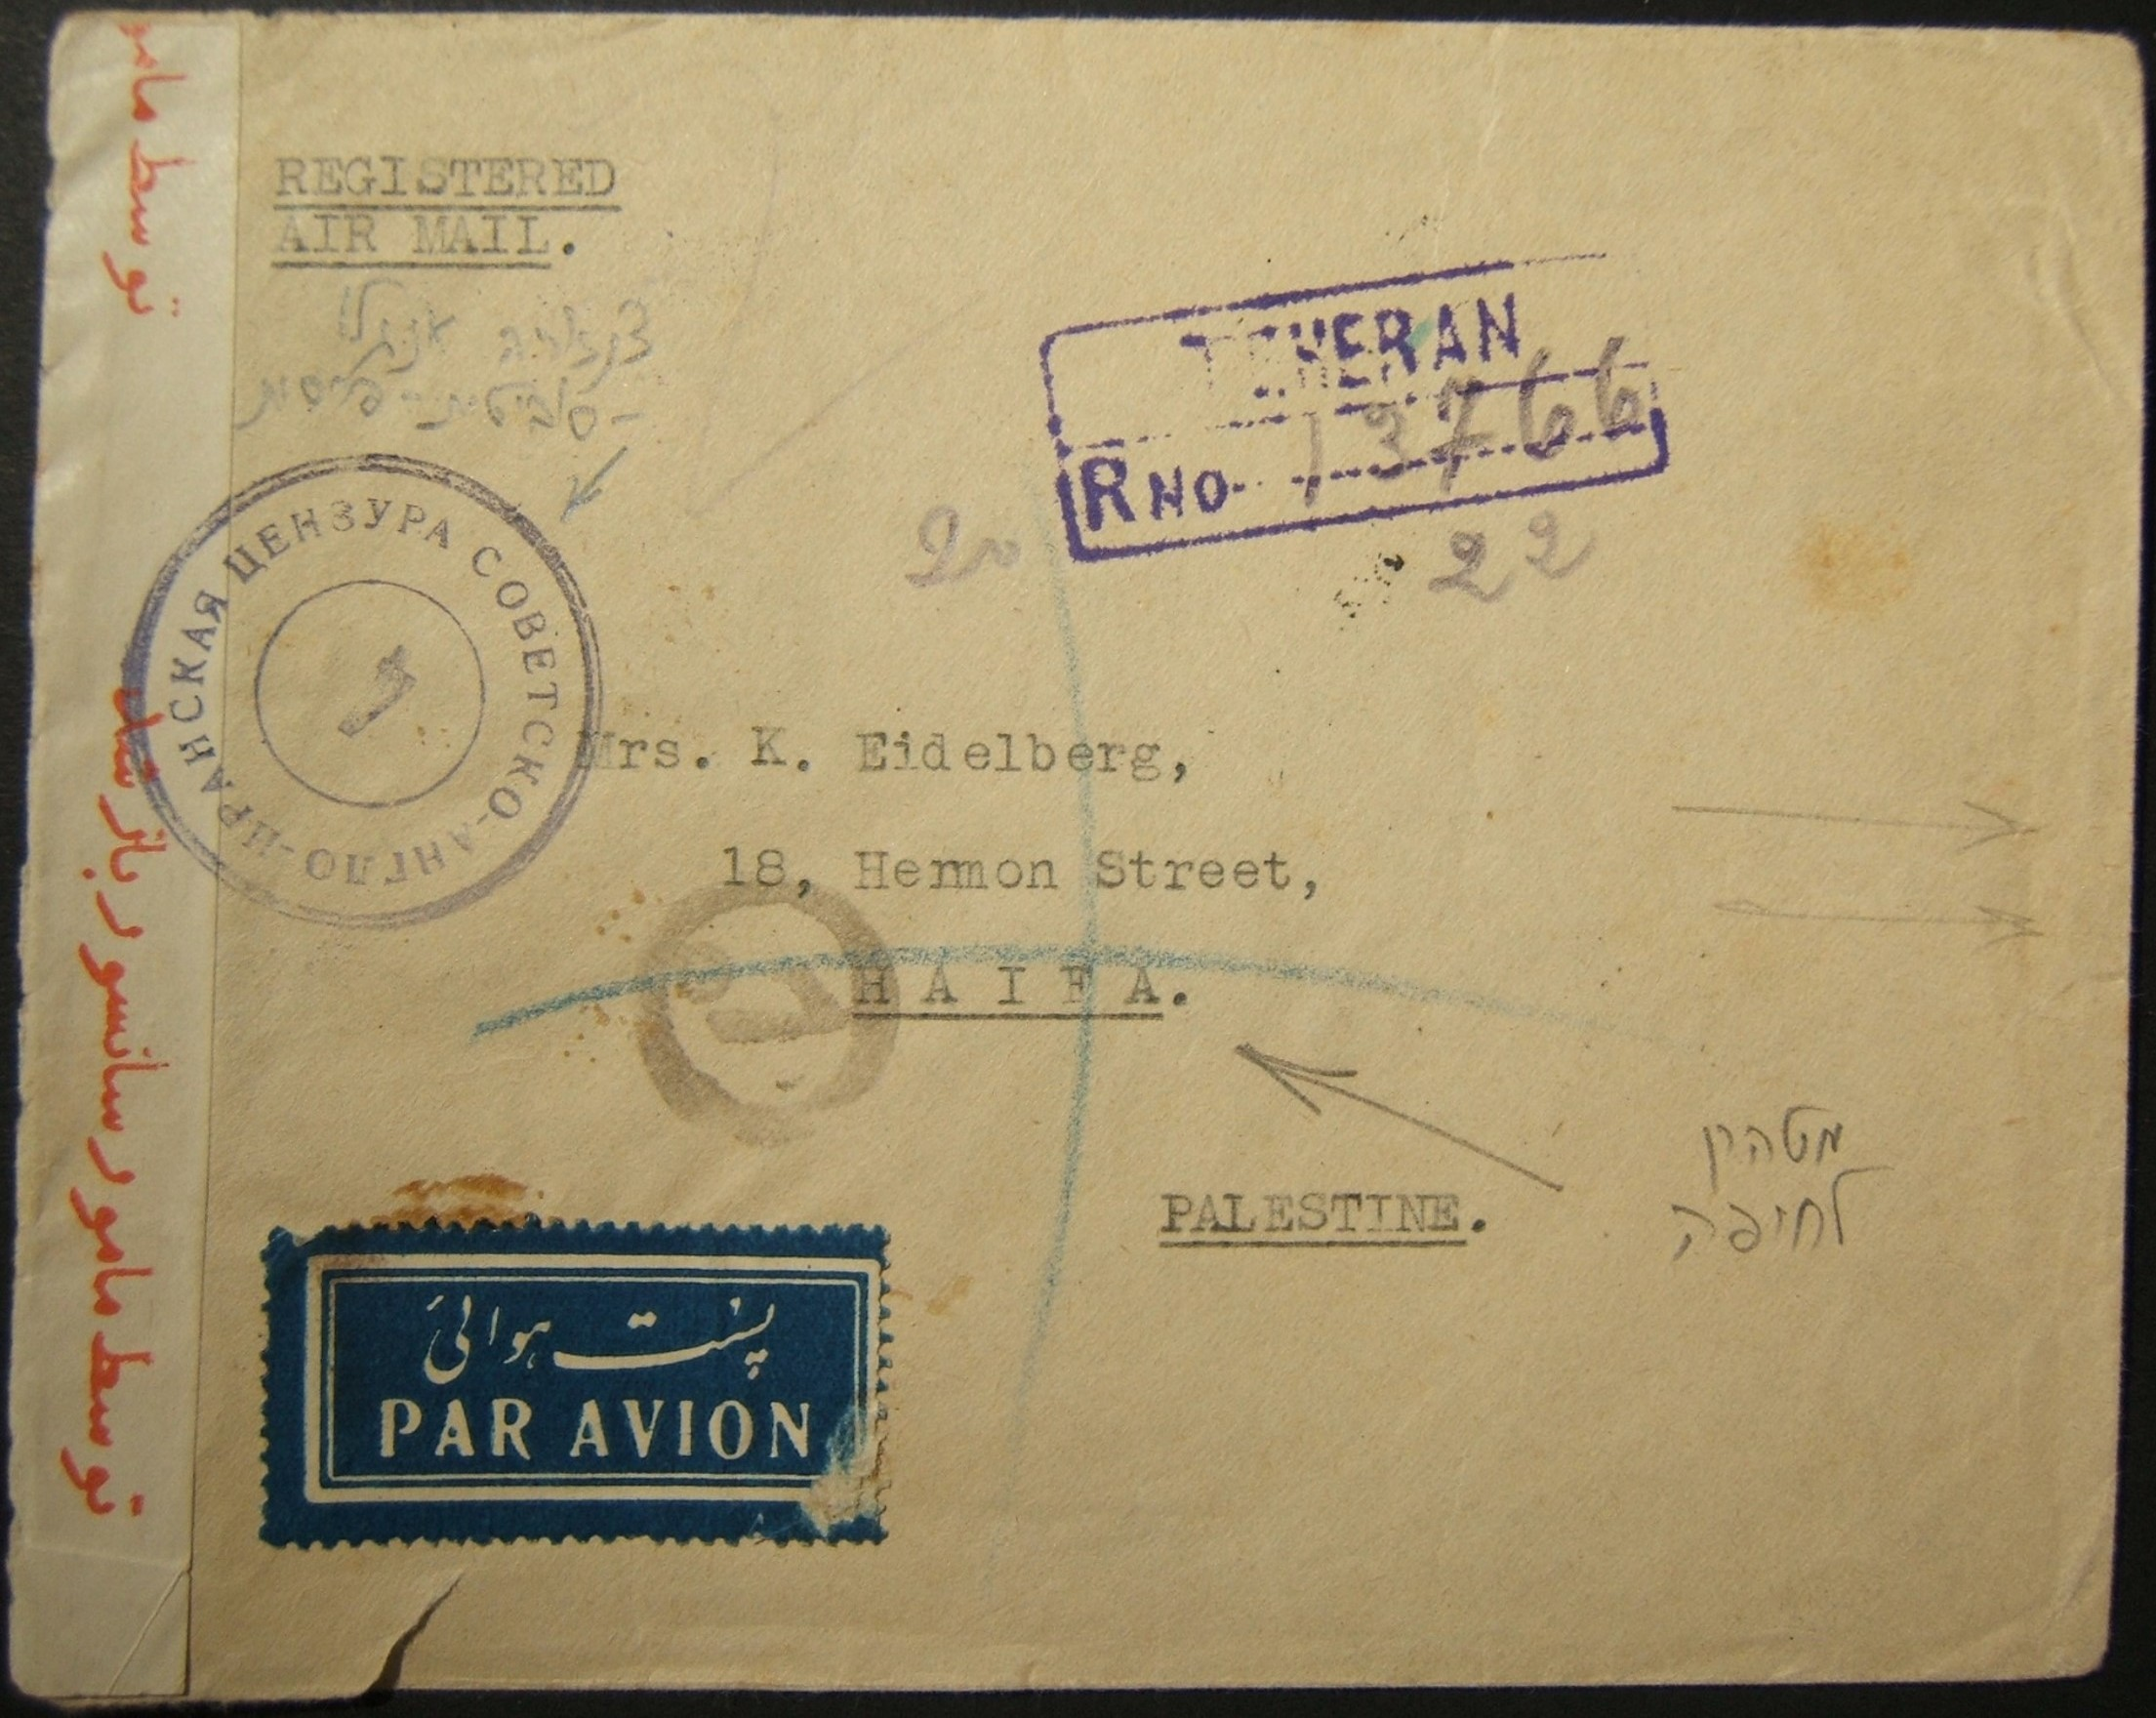 10/1943 WWII censored eastbound overland airmail from TEHRAN to HAIFA via BAGHDAD